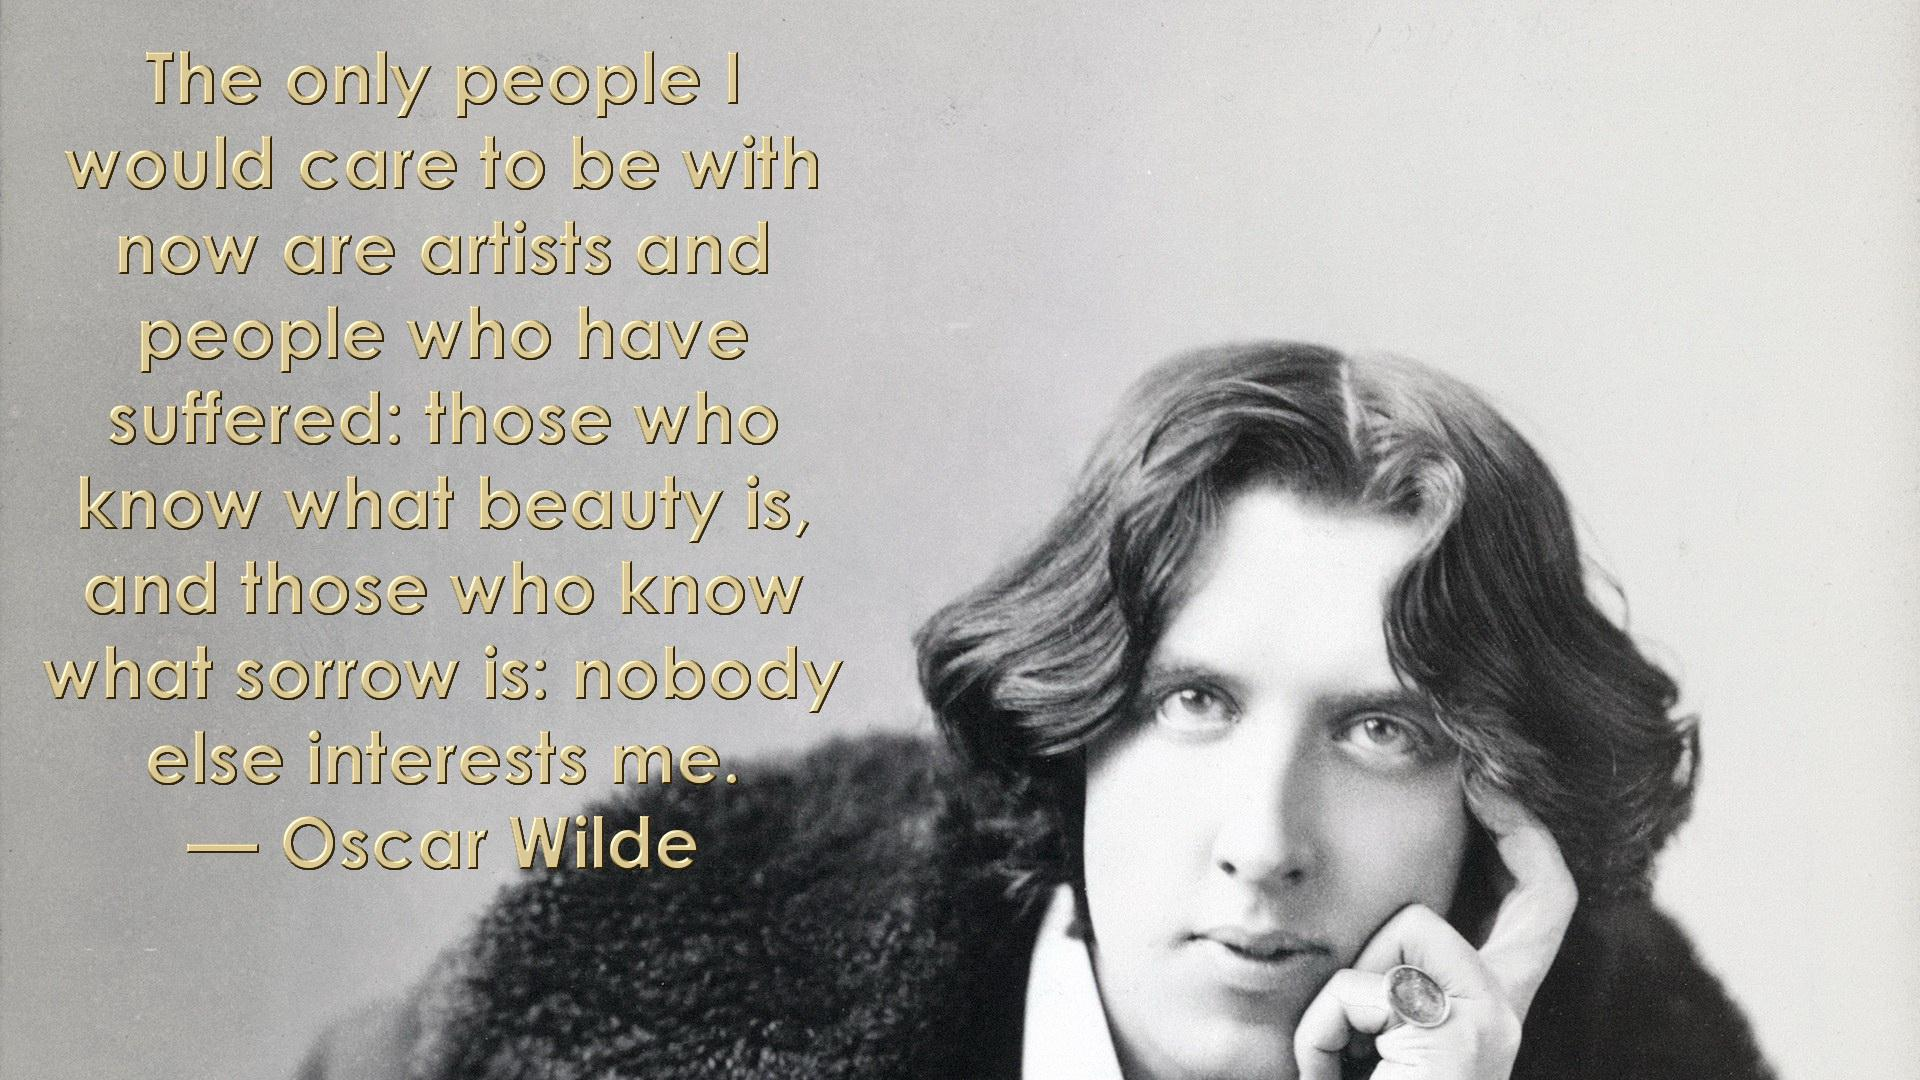 The only people I would care to be with now are artists and people who have suffered: those who know what beauty is, and those who know what sorrow is: nobody else interests me. — Oscar Wilde [1920 x 1080]